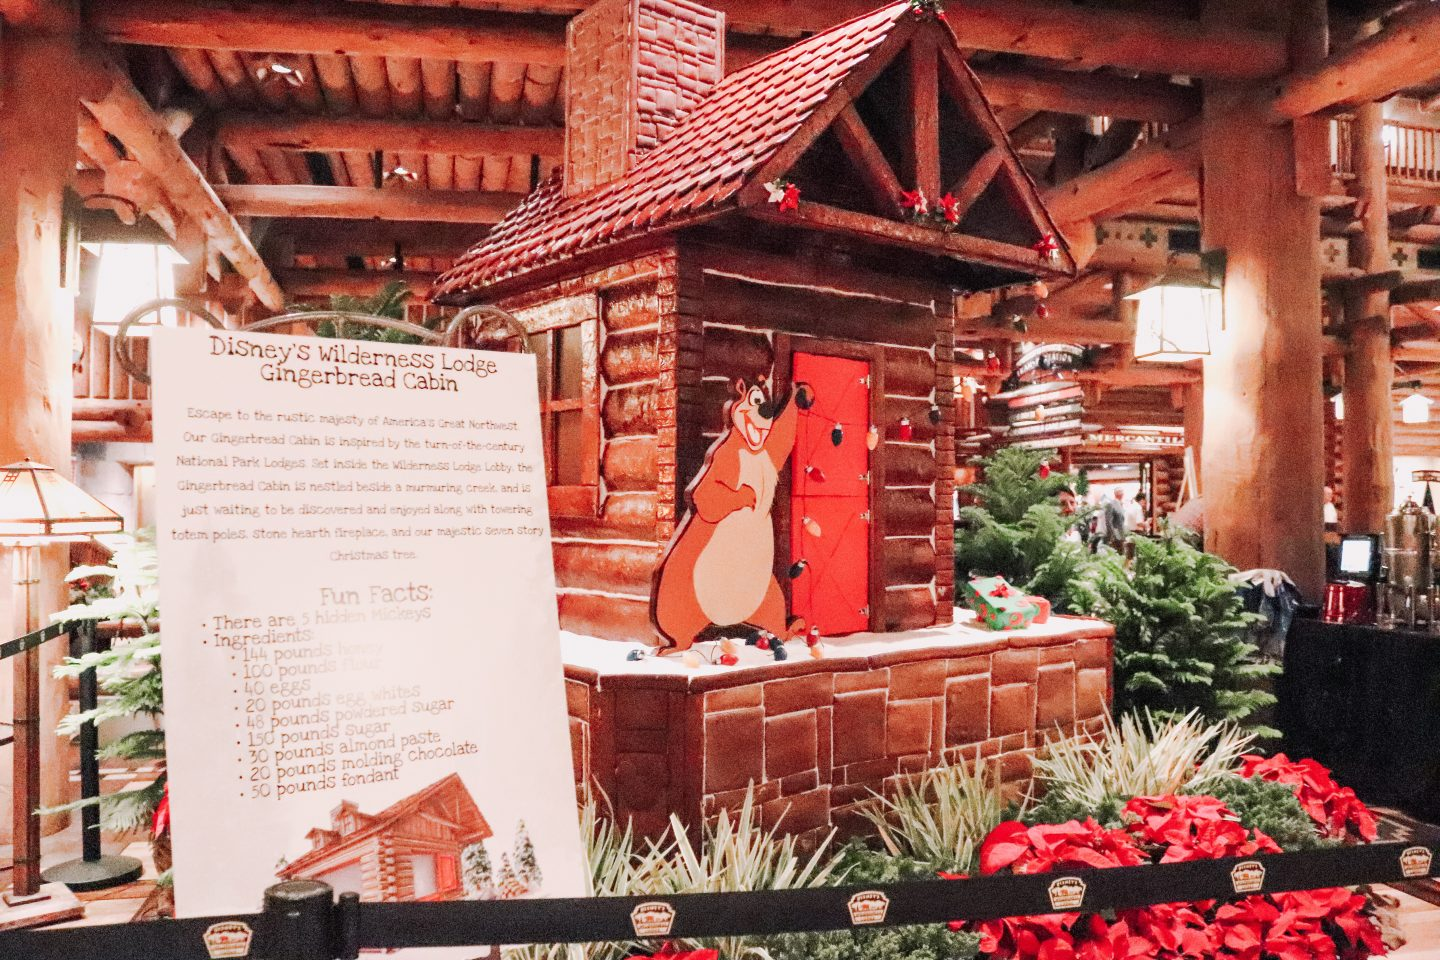 Walt Disney World Gingerbread display